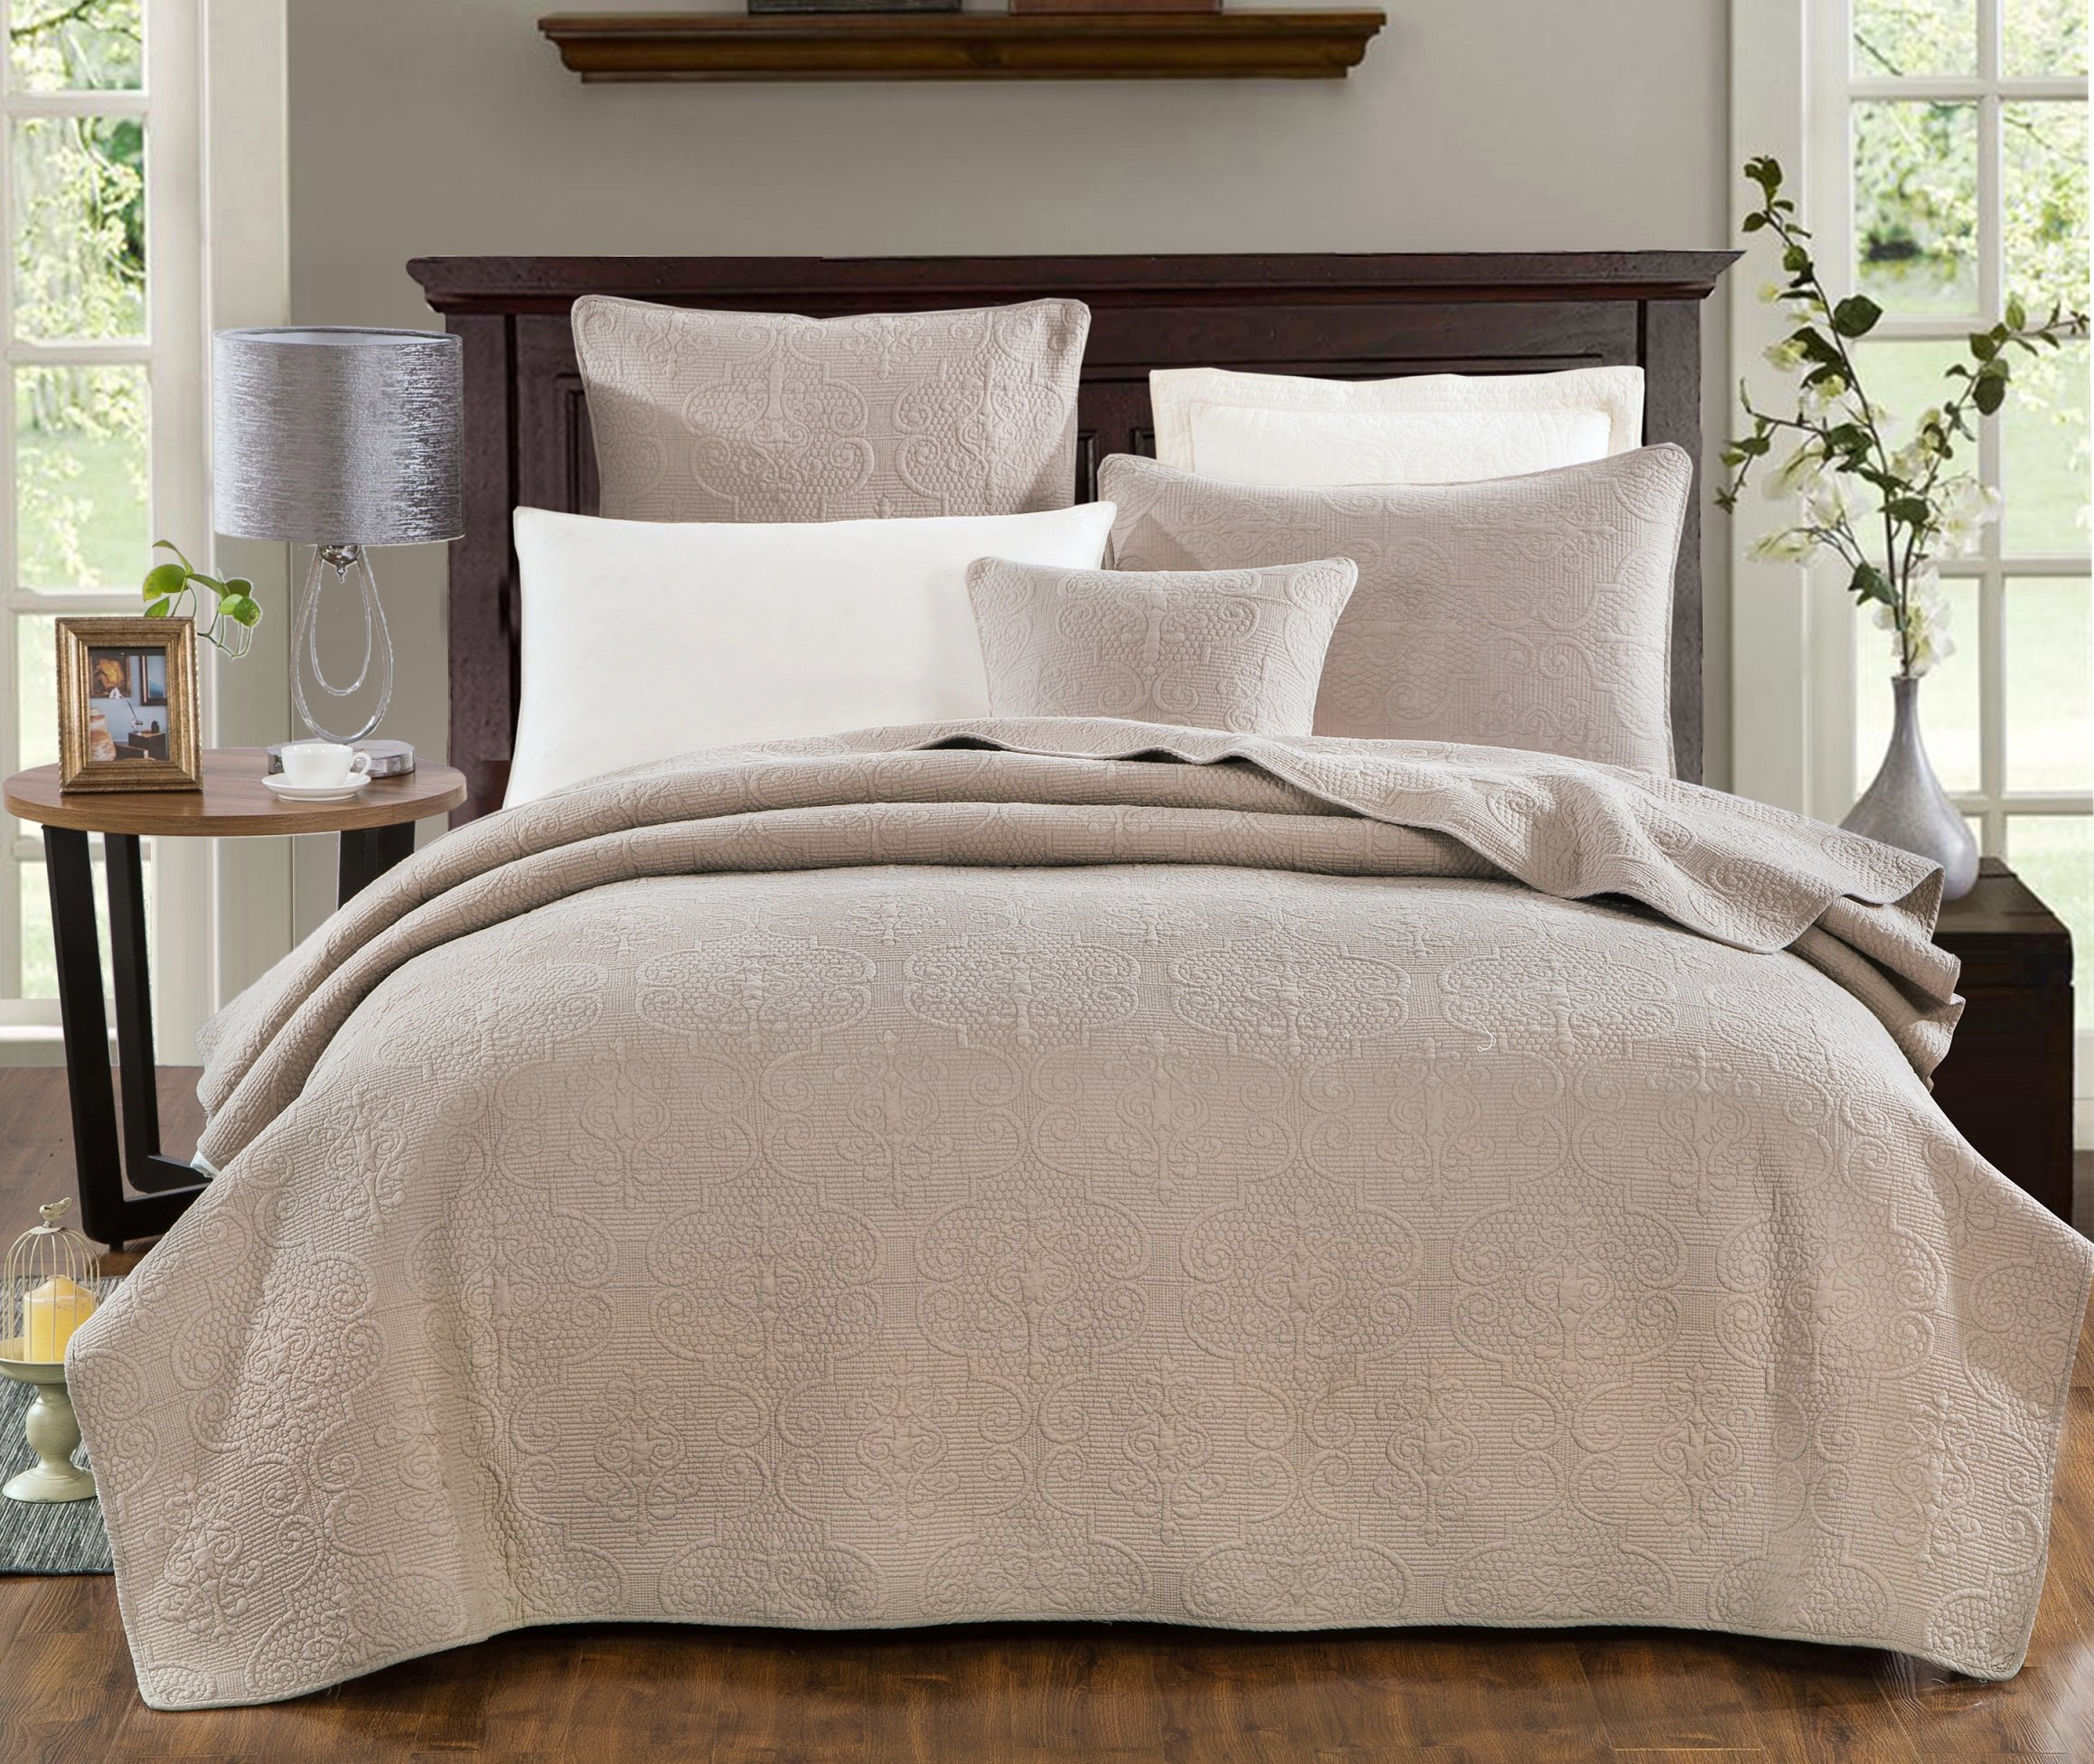 DaDa Bedding Sand Dollar Elegant Embossed Textured Quilted Coverlet Bedspread Set - Neutral Tan Beige Floral Print - Queen - 3-Pieces